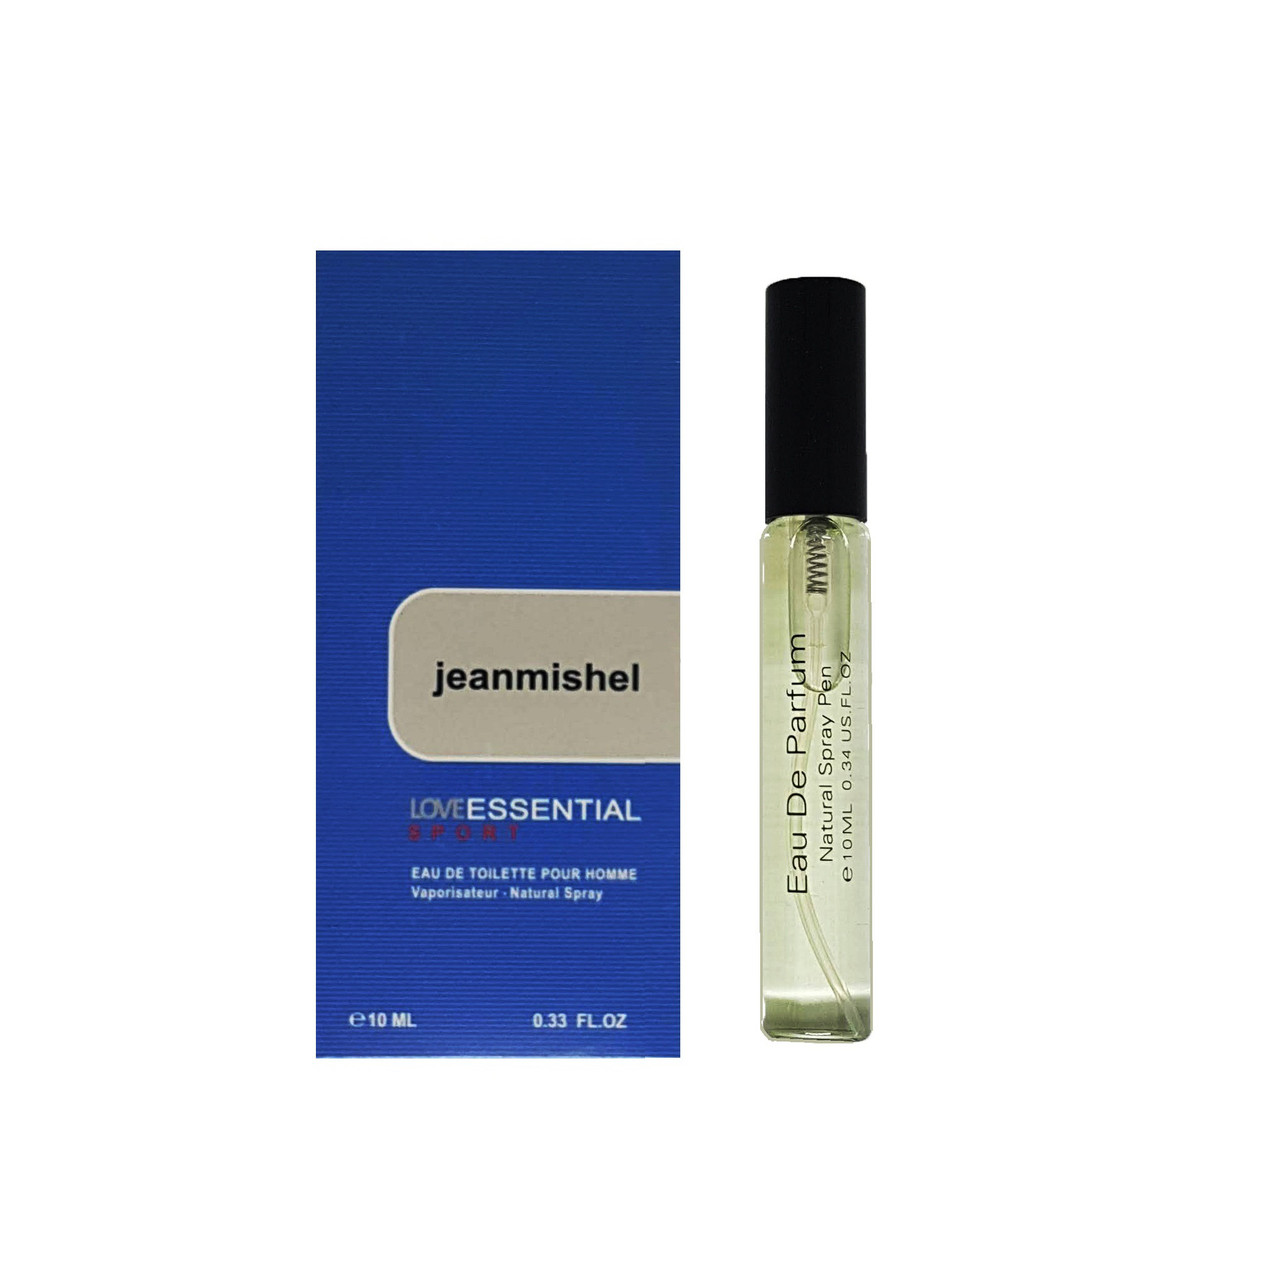 Jeanmishel Love Essential Sport pour homme (55) 10ml